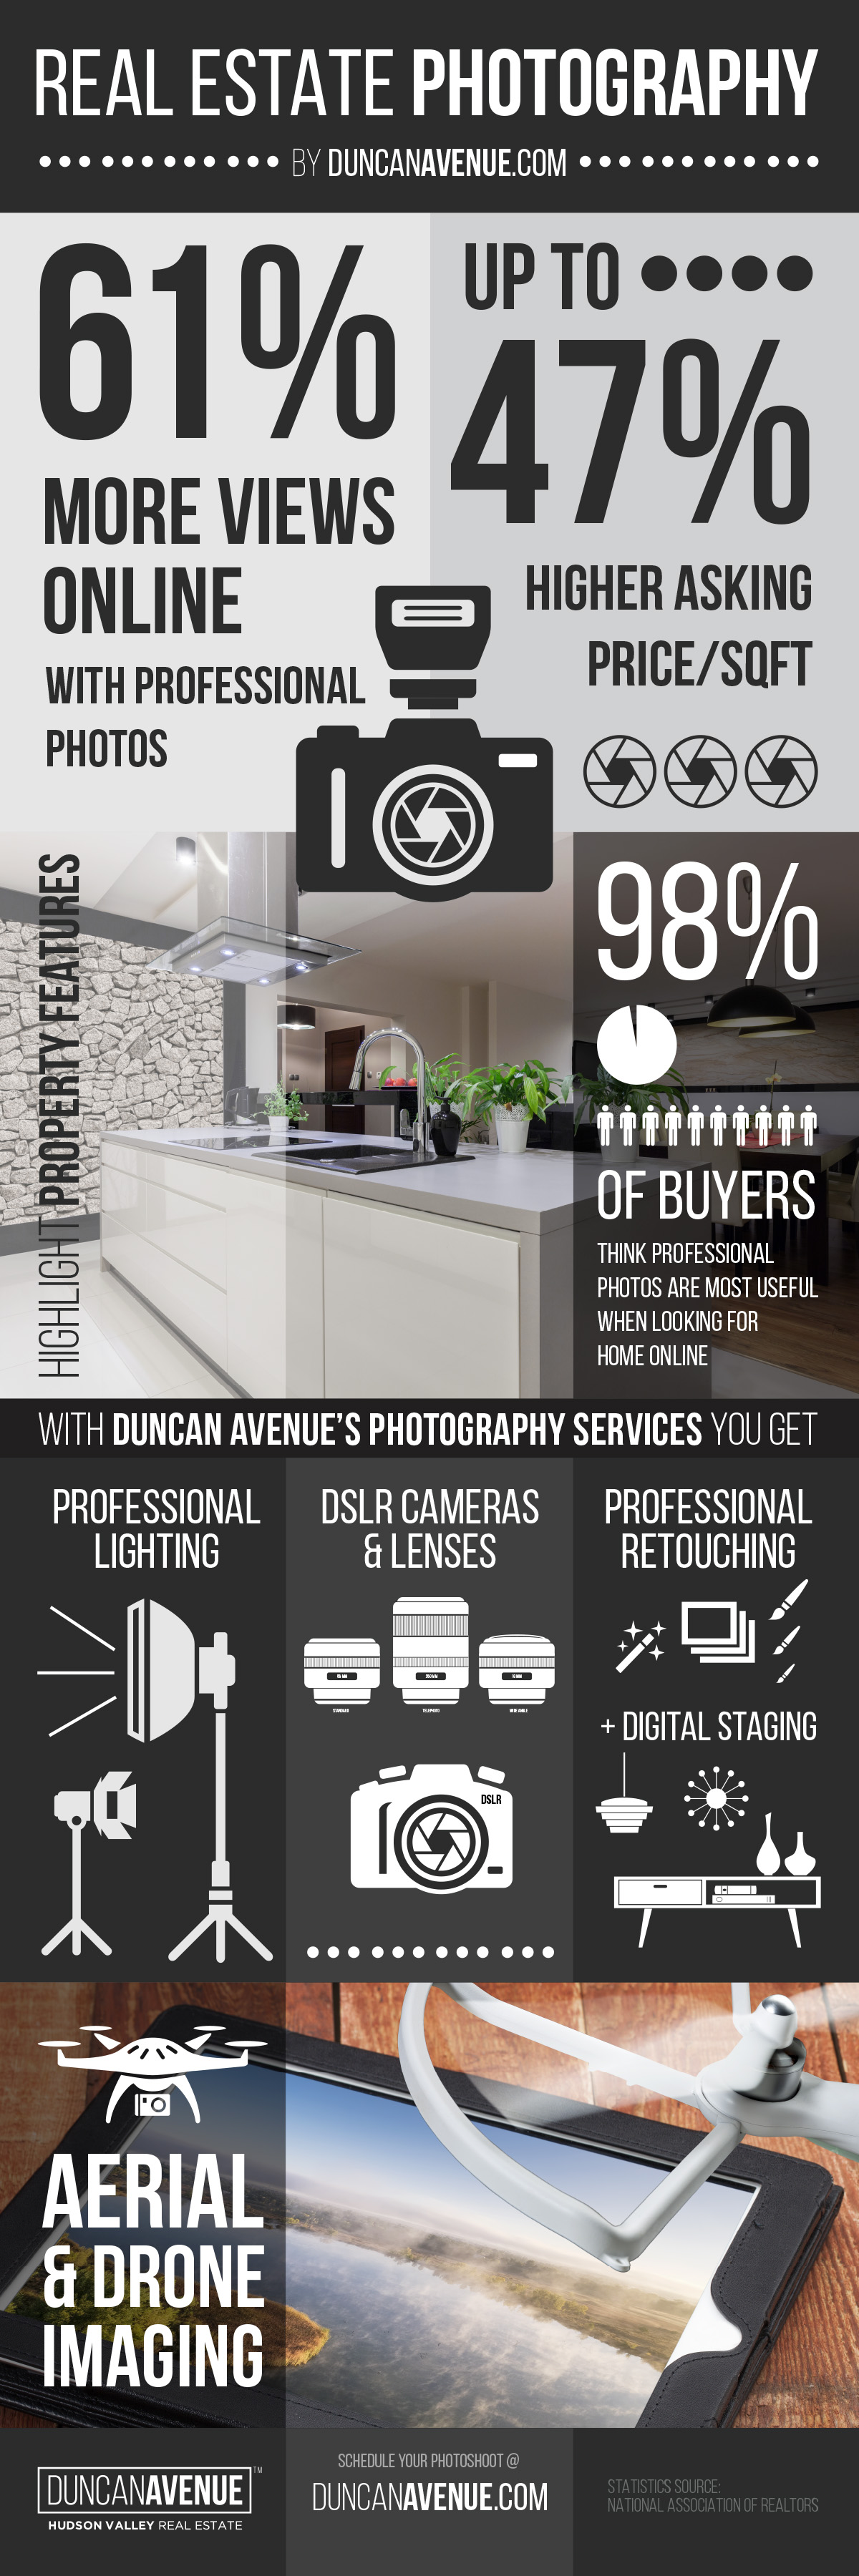 Real Estate Photography 101 by Duncan Avenue - Infographic for Hudson Valley Style Magazine